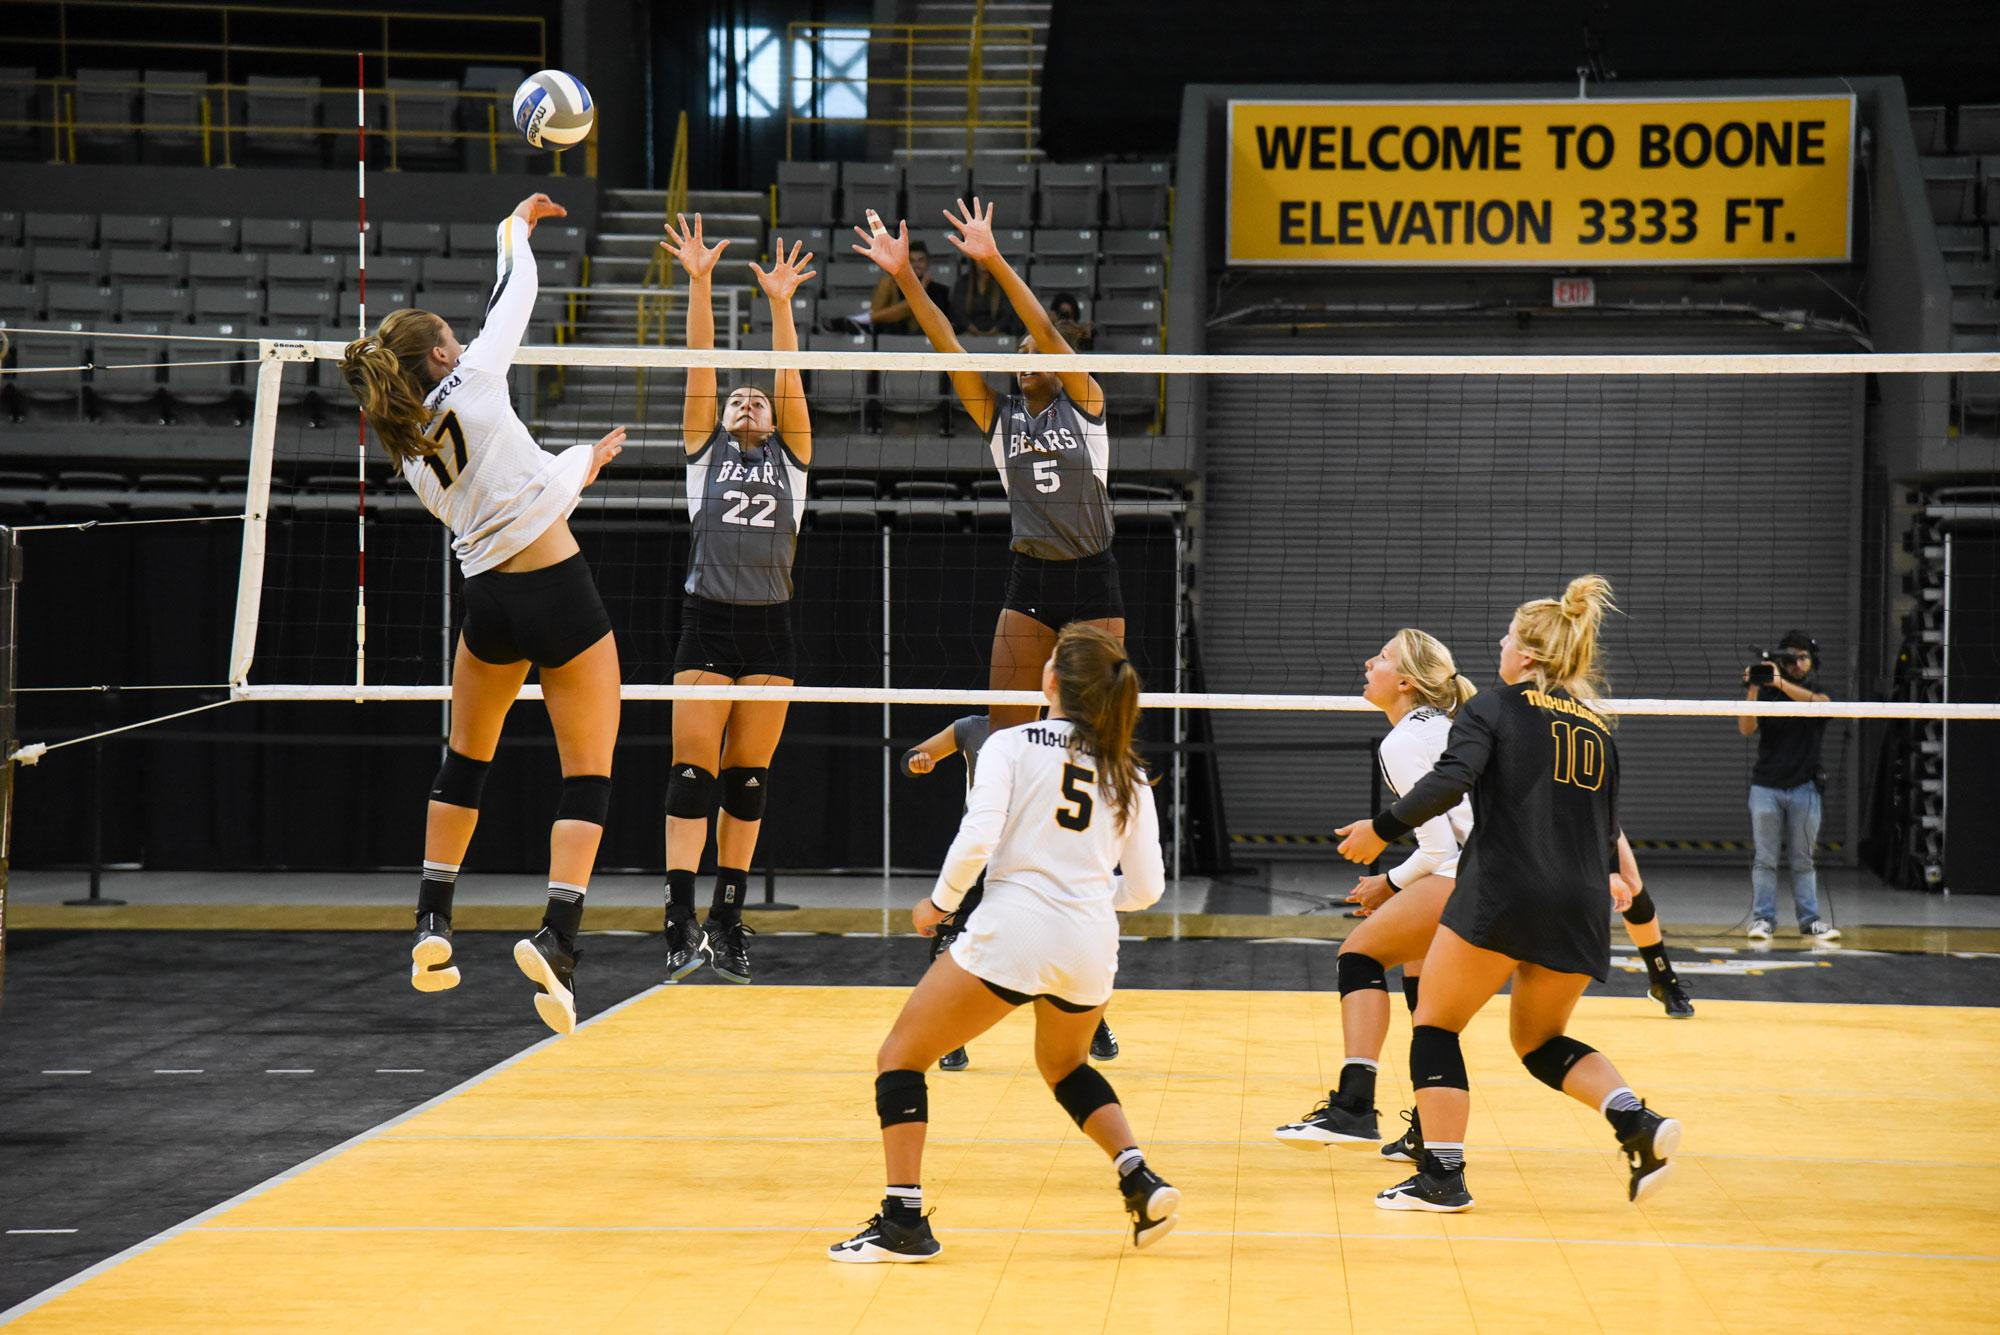 Volleyball opens up season with another five set loss, but show plenty of optimism